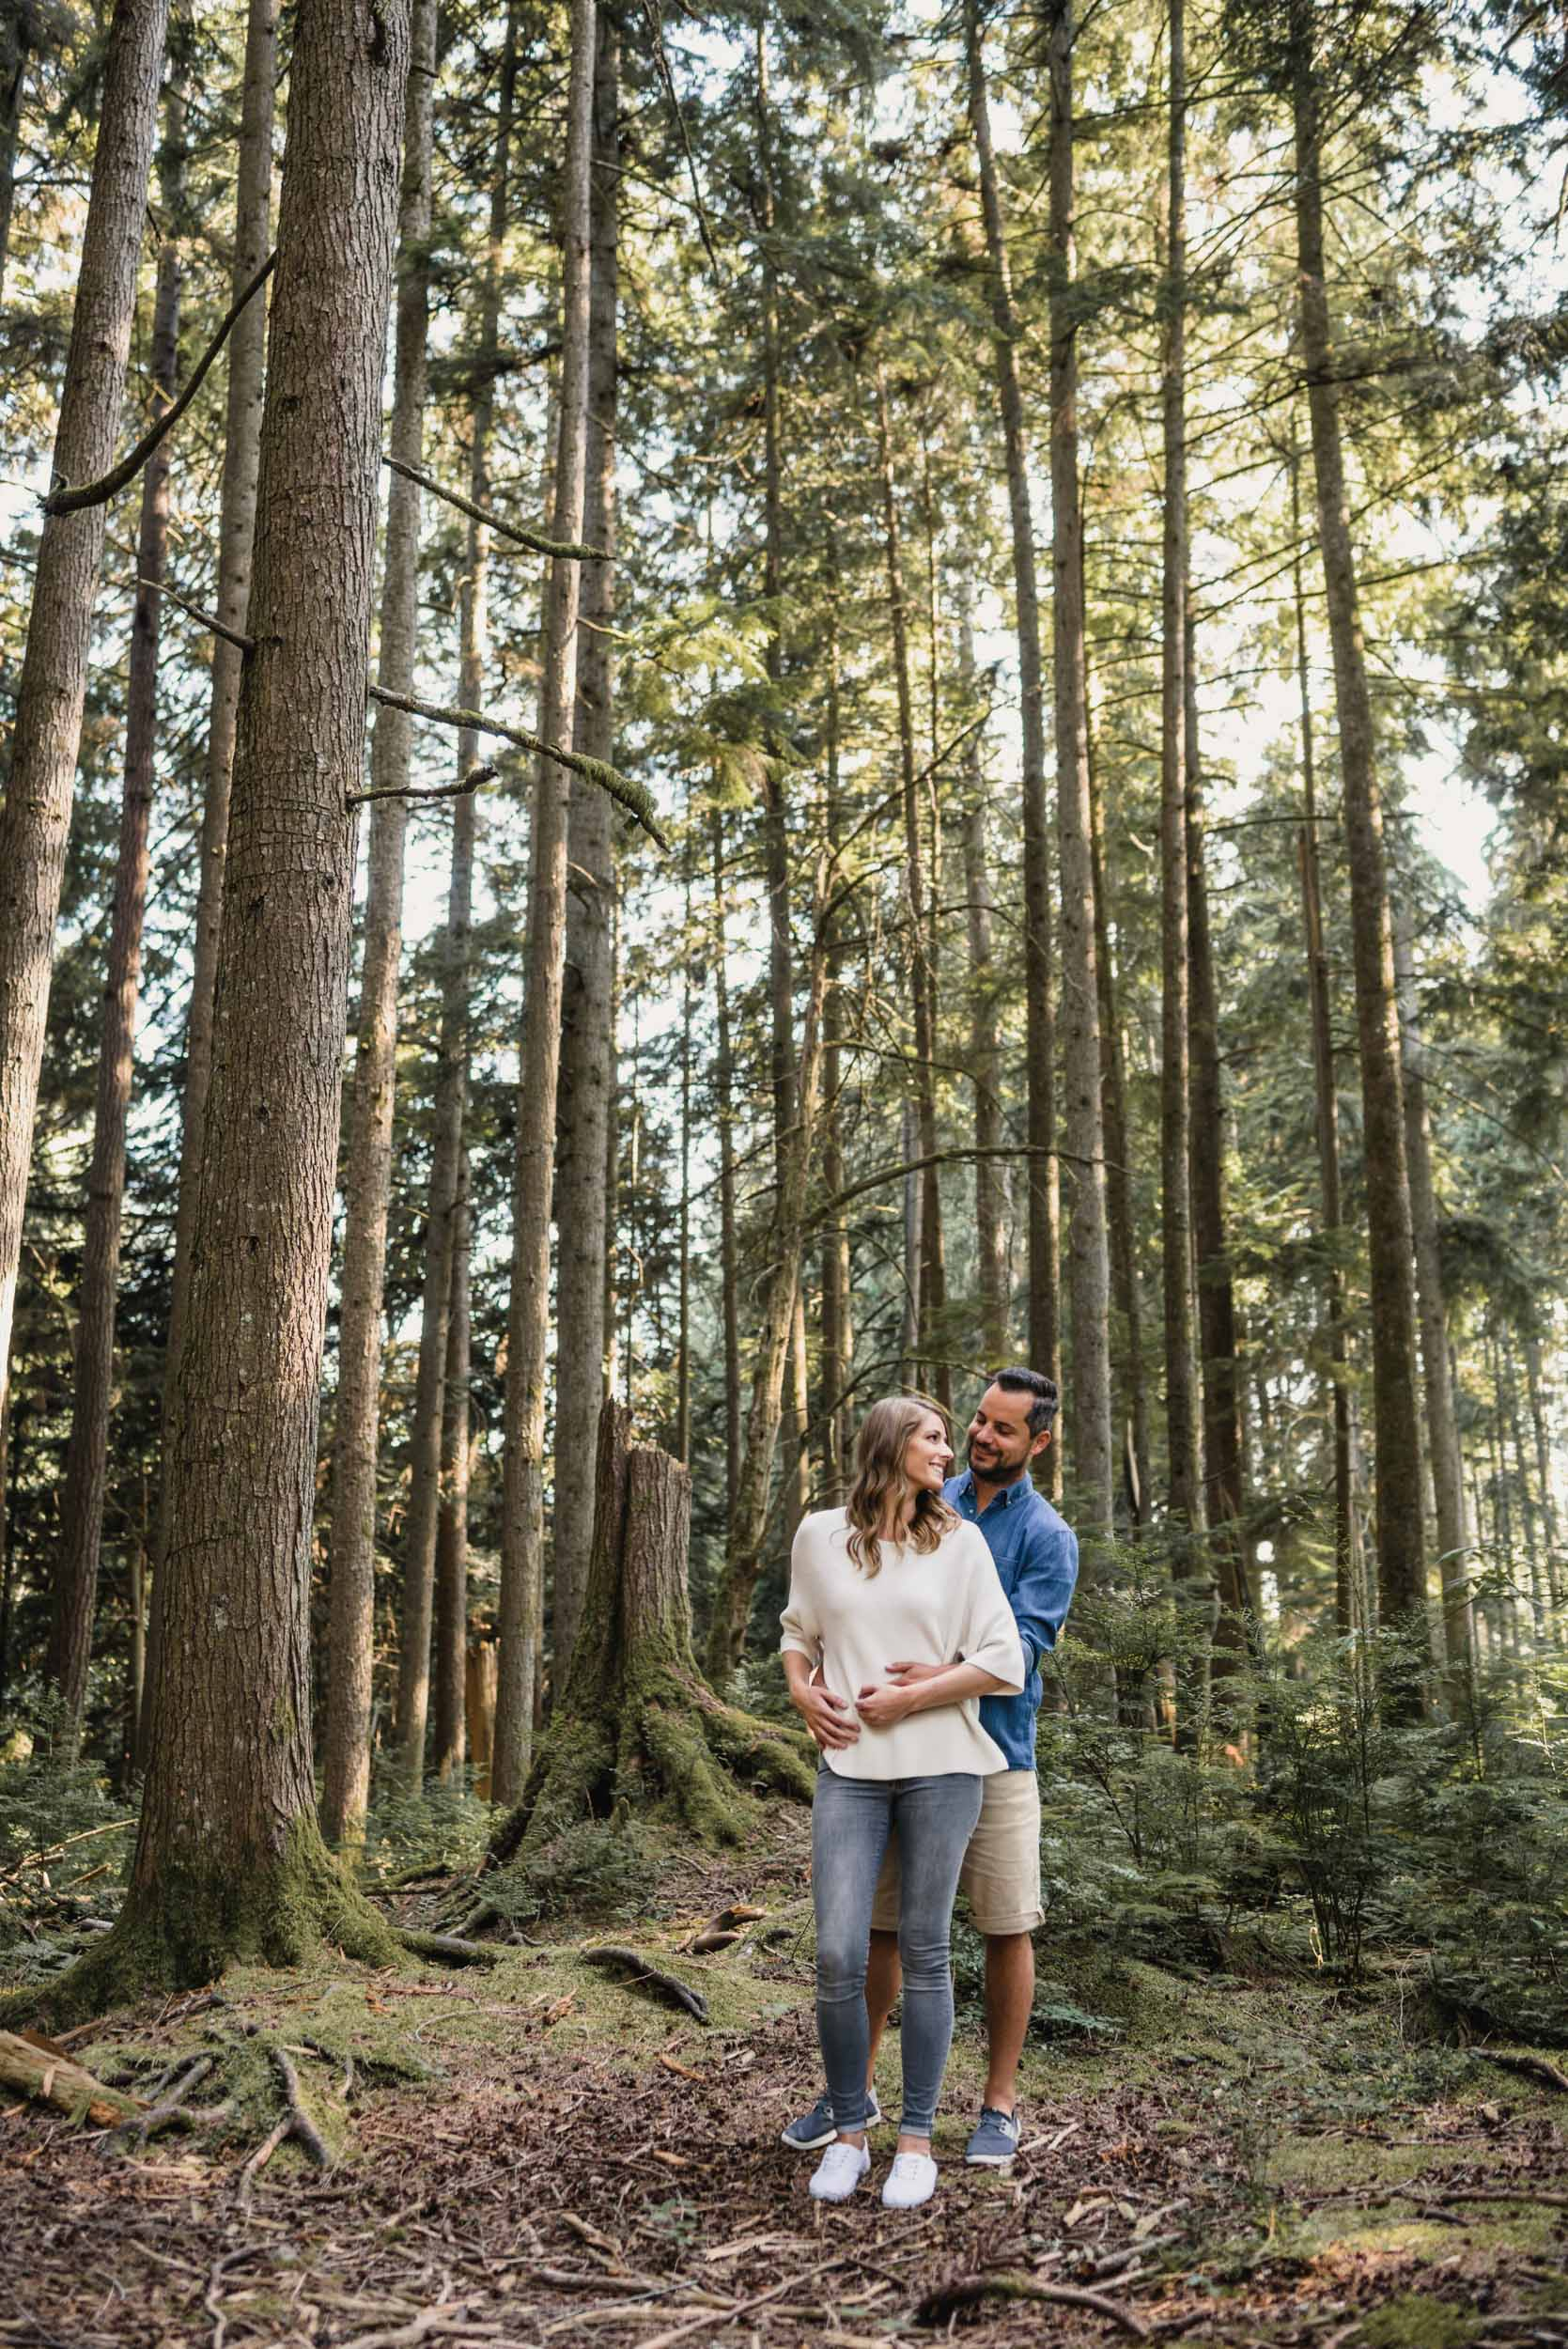 Couple embraces in the forest